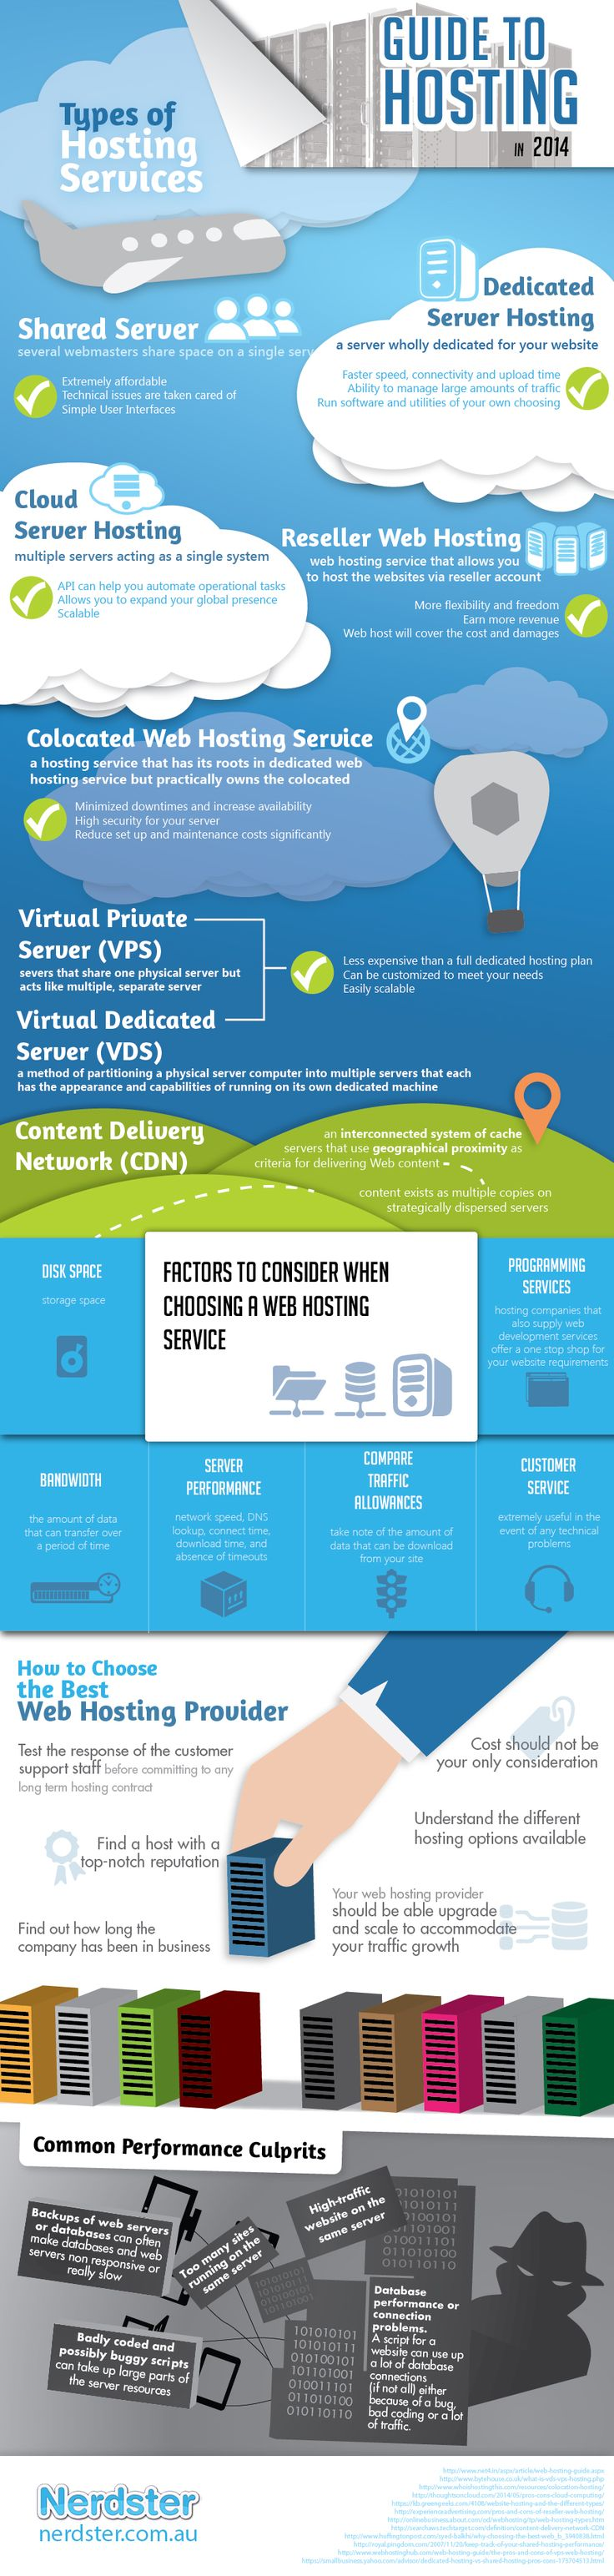 Guide to Web Hosting #infographic #infografía